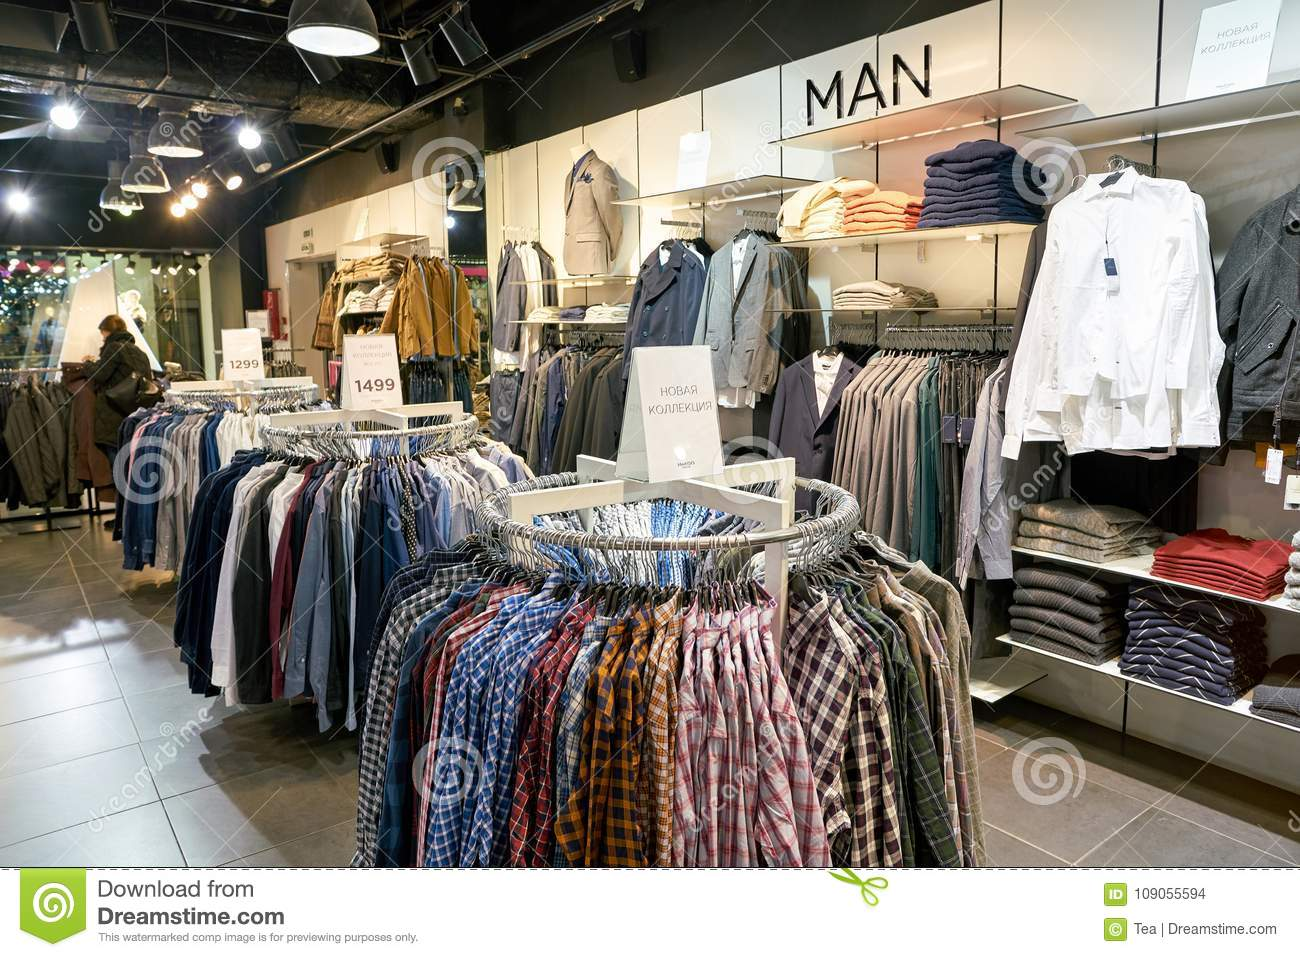 611e8dab9b910 Mango outlet editorial stock image. Image of wear, inside - 109055594